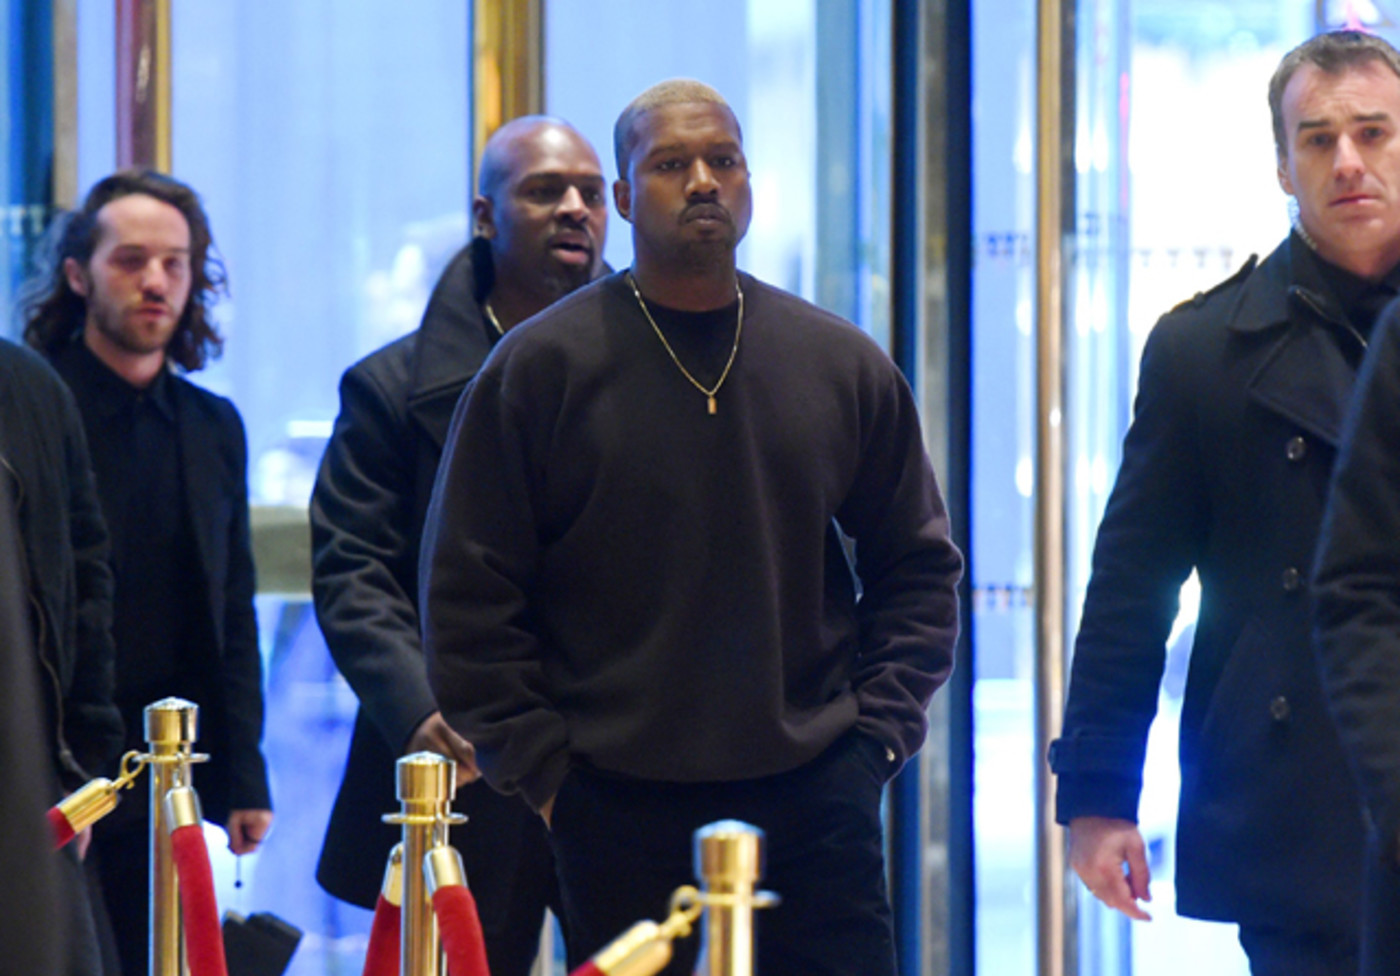 Kanye West meets Donald Trump at Trump Tower